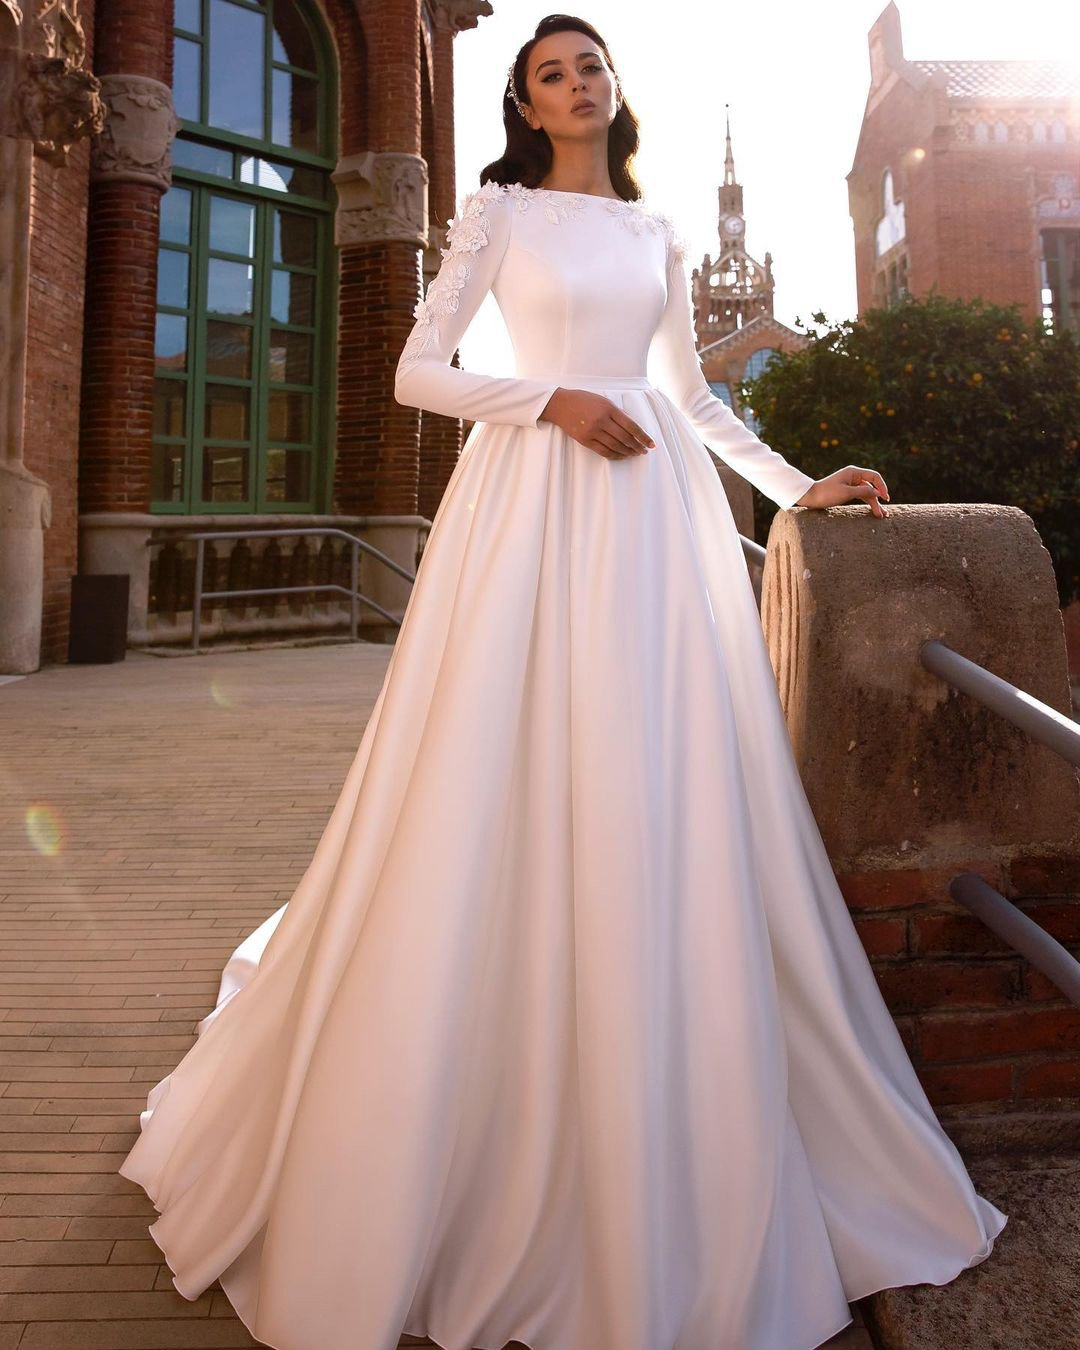 modest wedding dresses ball gown with long sleeves simple tina valerdi